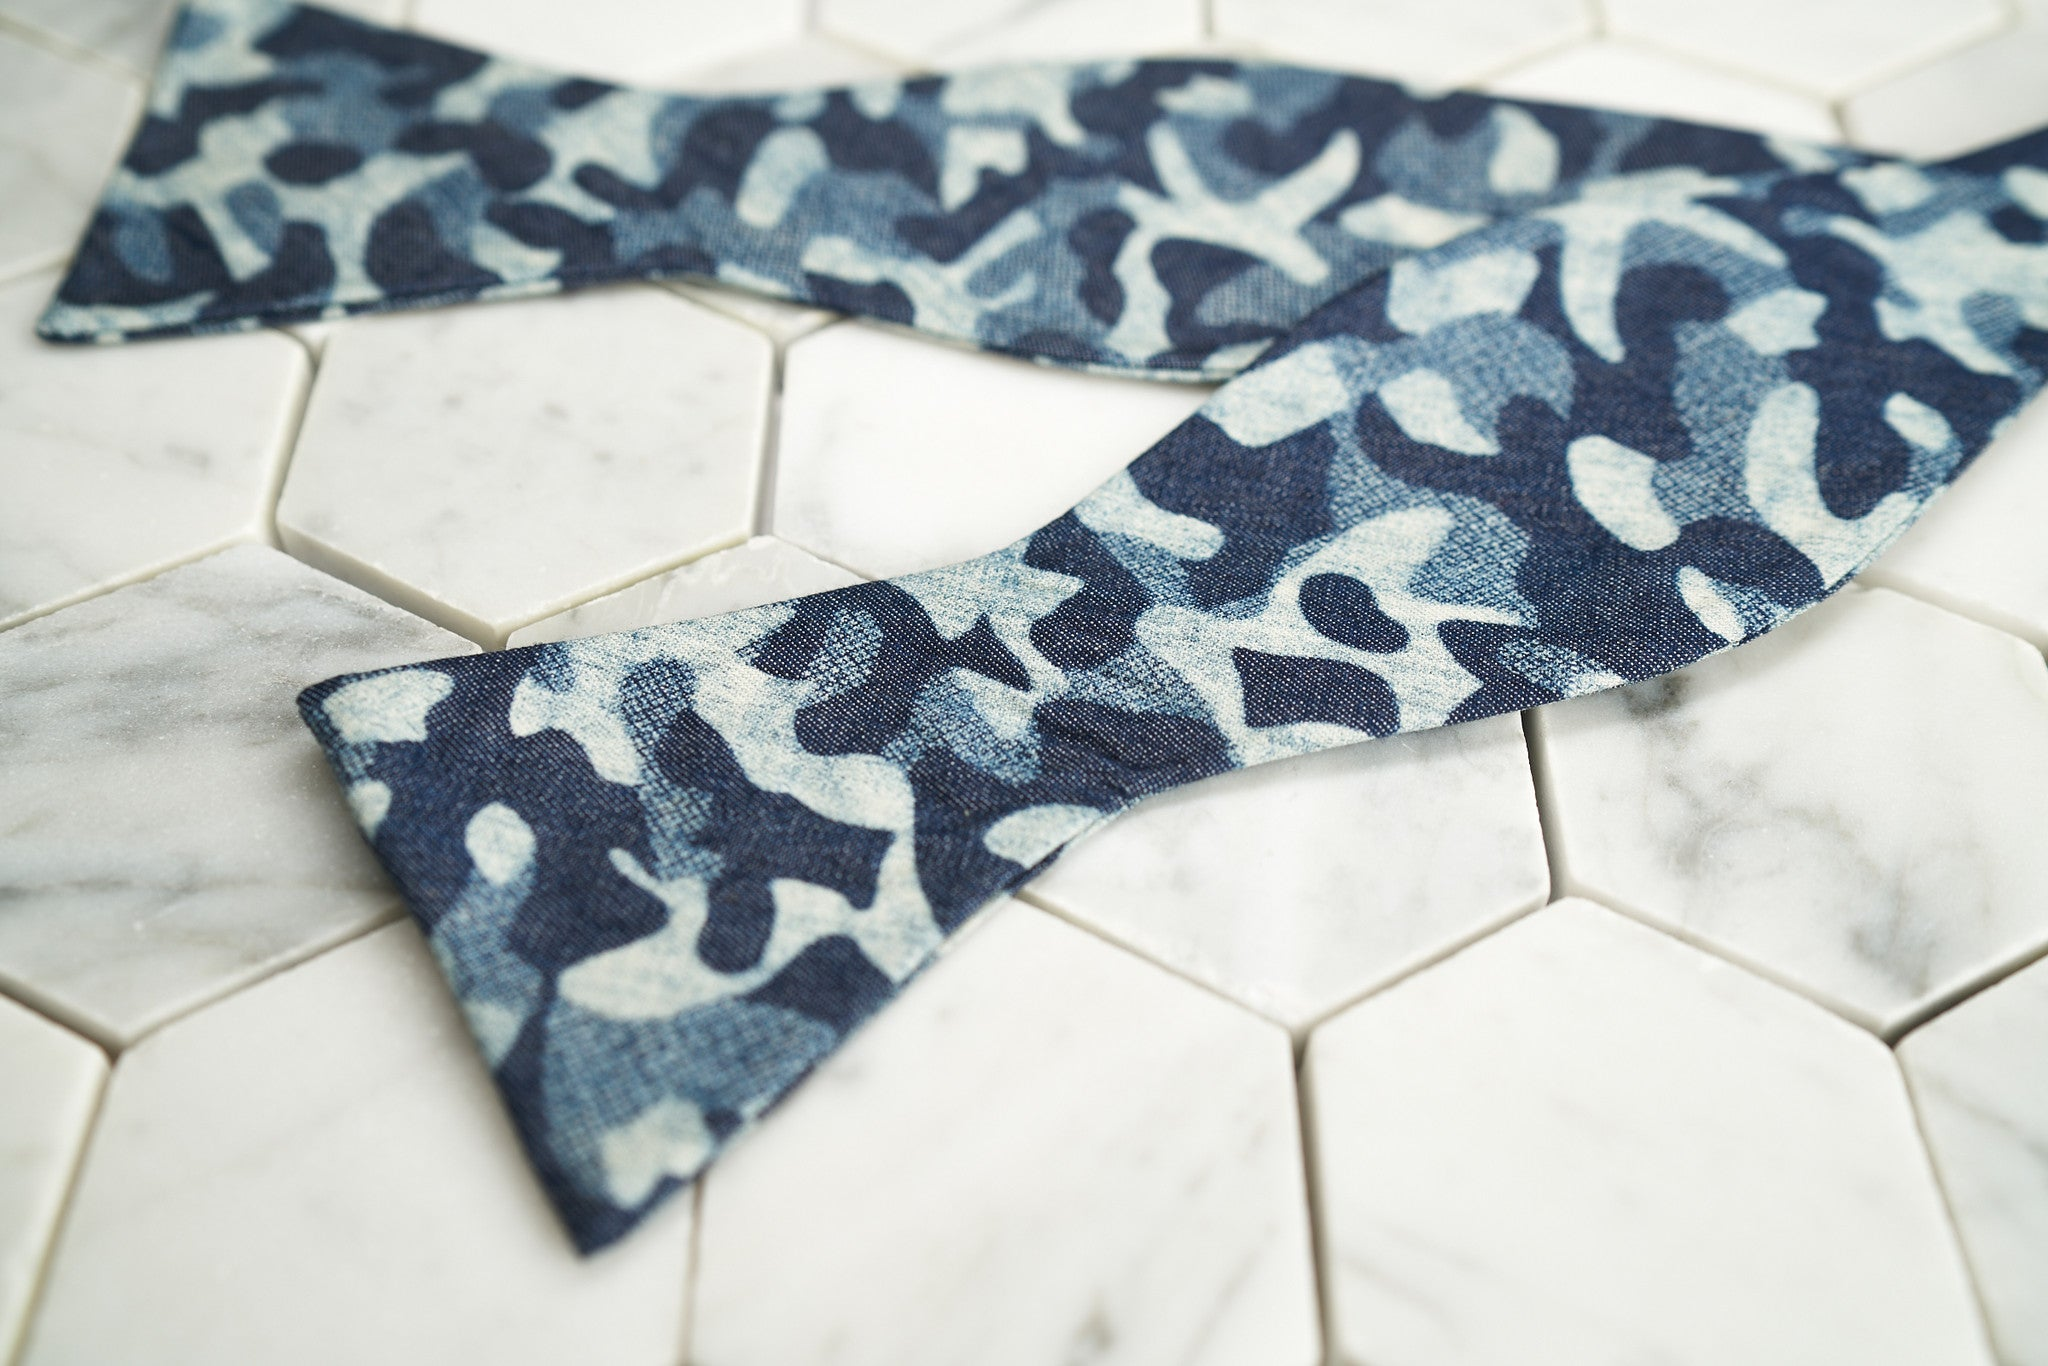 An image of an untied a blue indigo camouflage bow tie, laying across a white hex tile background.